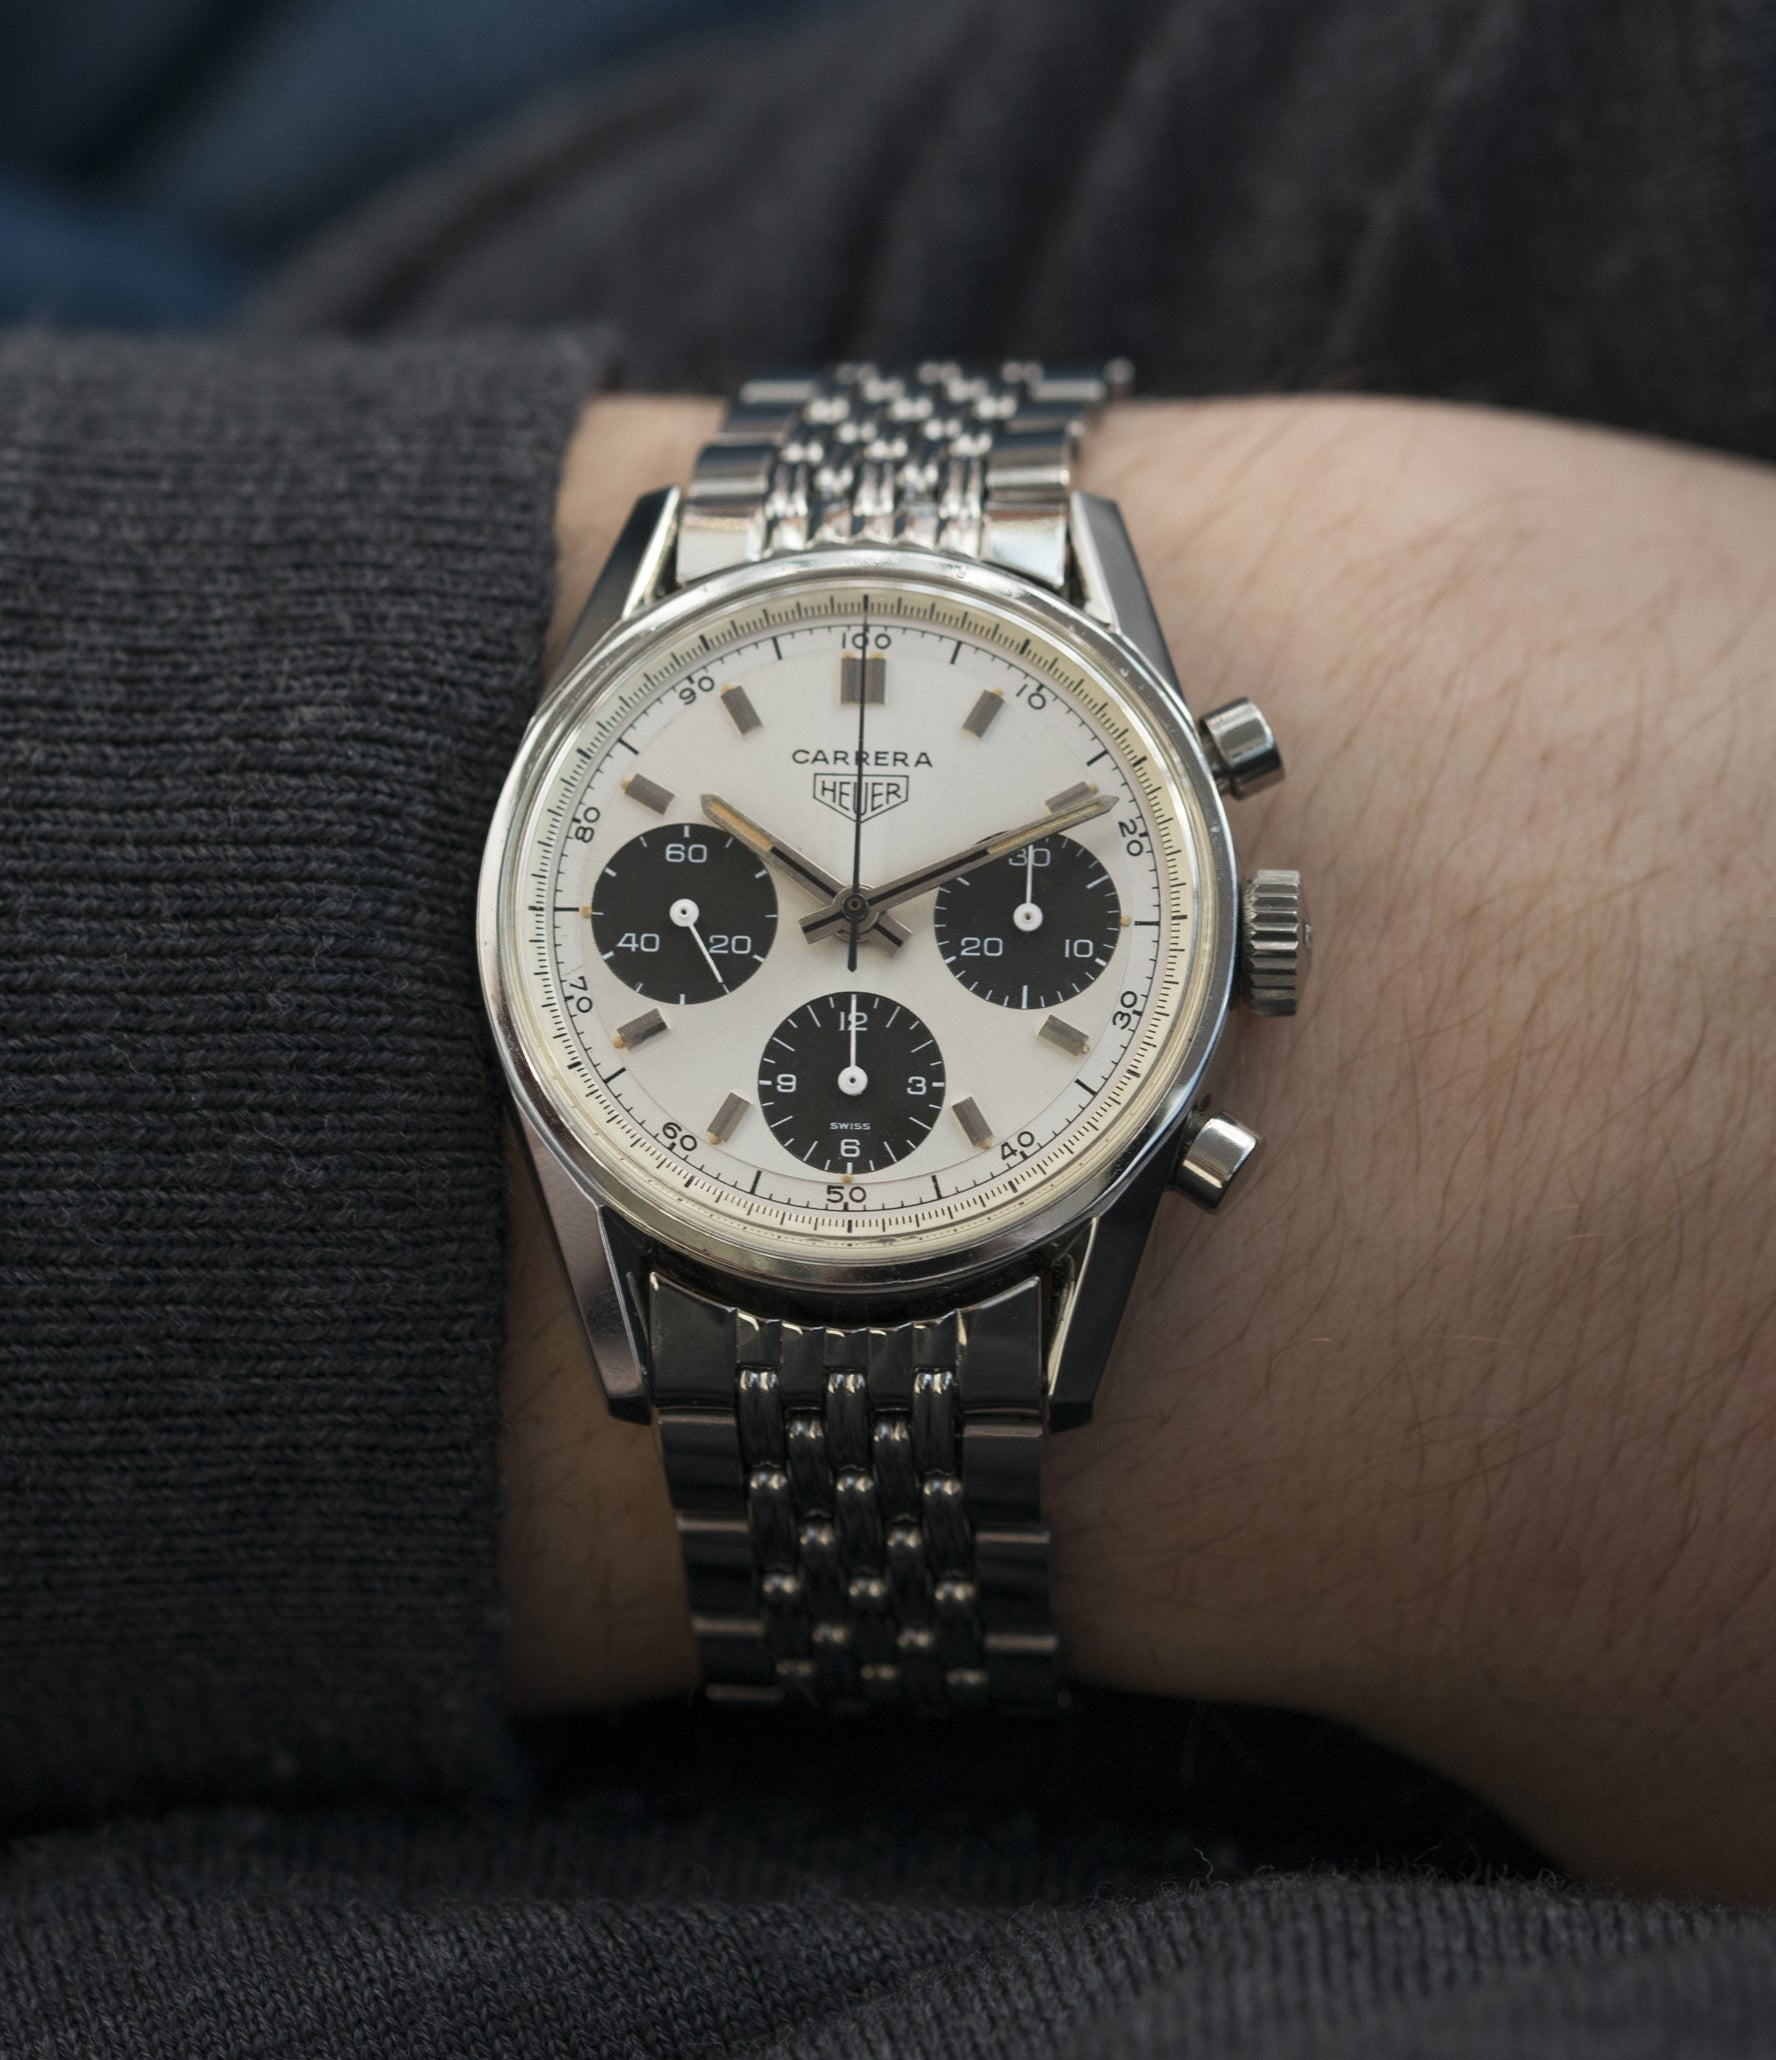 Heuer Carrera 2447SND panda dial steel sport wristwatch buy online at A Collected Man London UK specialist of rare vintage watches